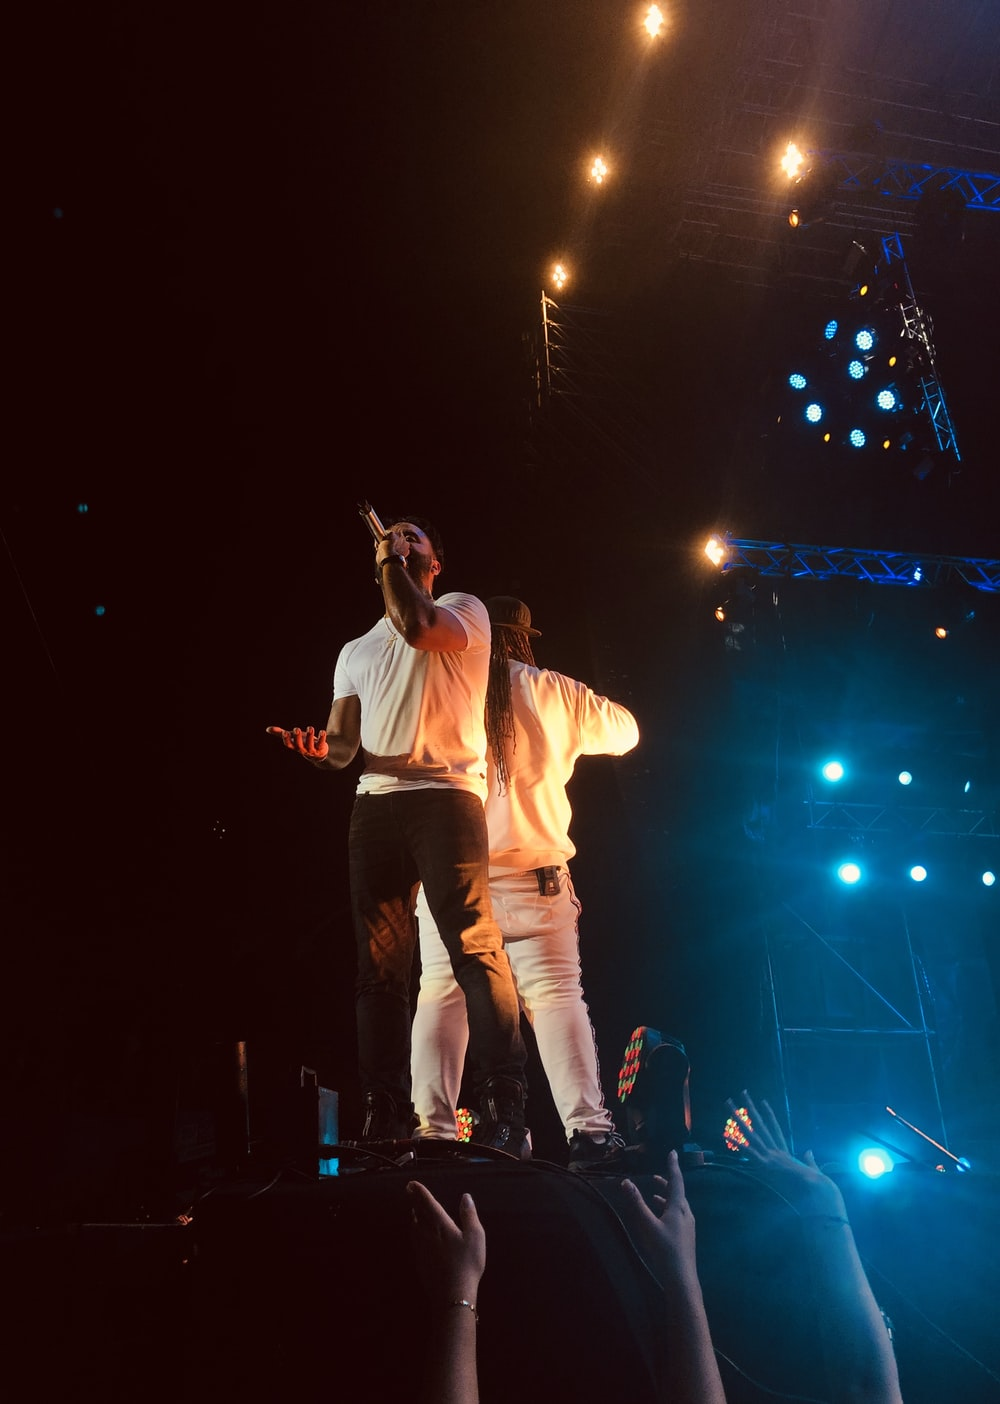 man in white crew neck t-shirt and blue denim jeans singing on stage